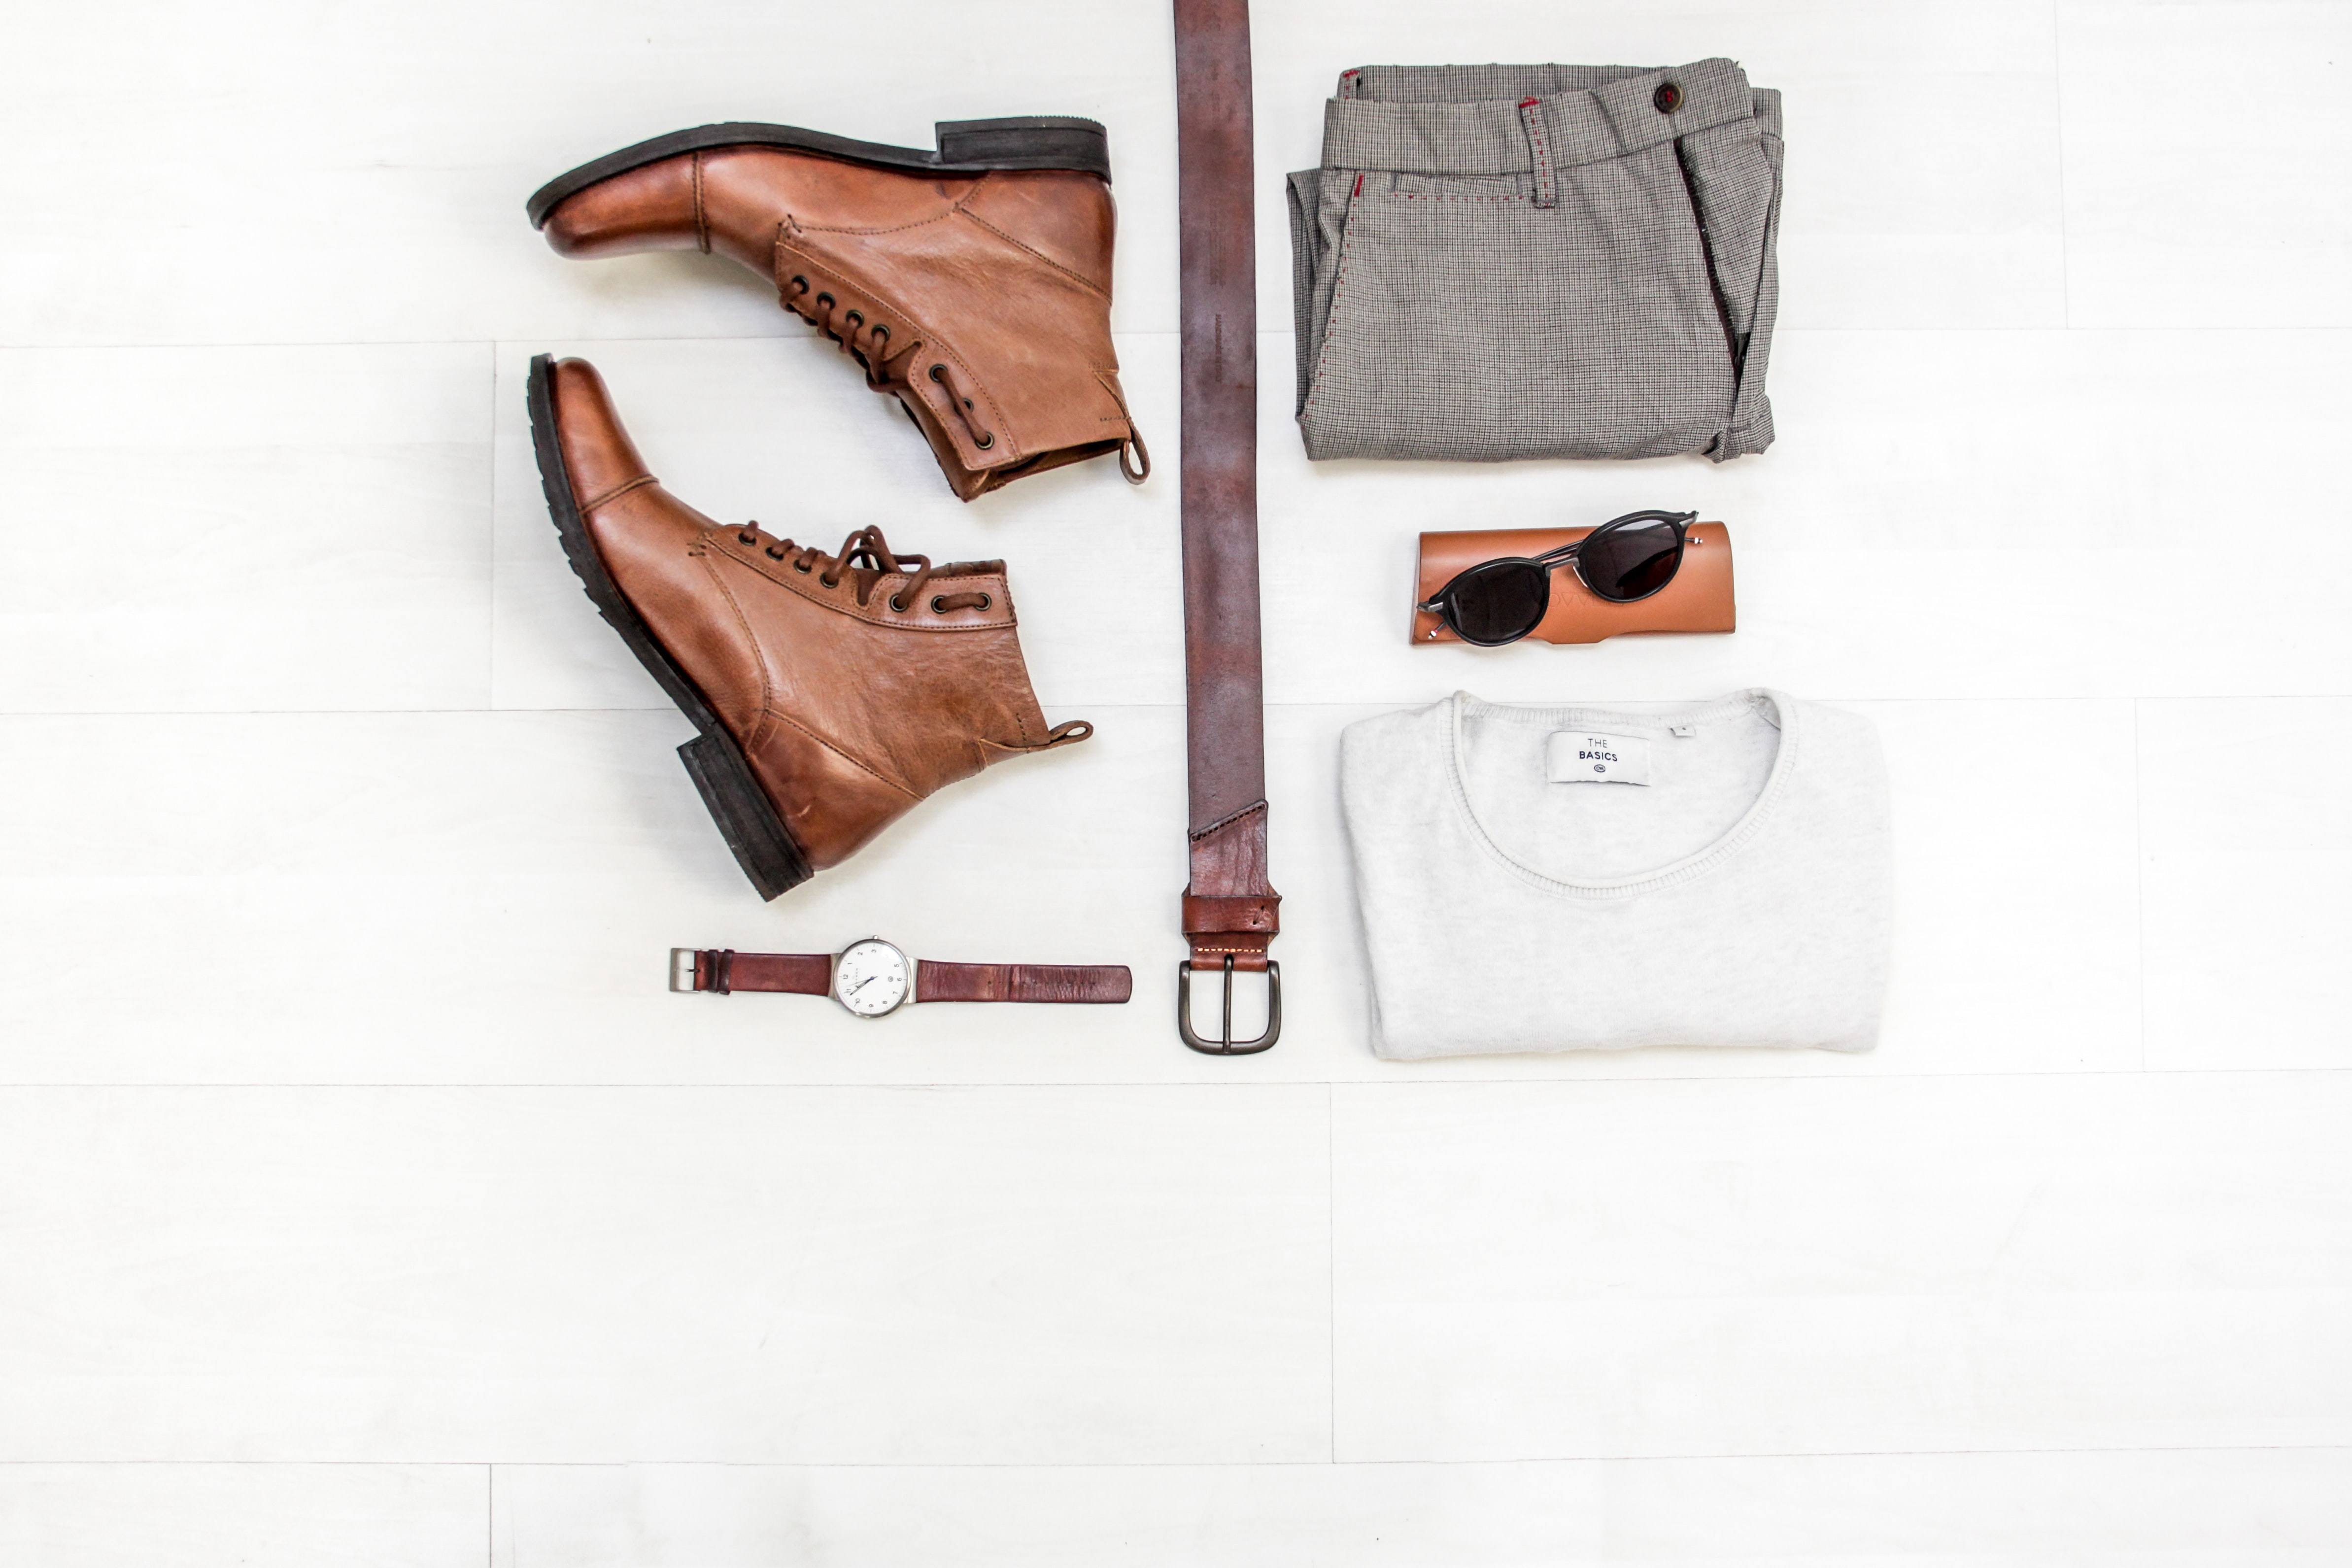 Top down view of a pair of leather boots, a leather belt, a leather analogue watch, grey slacks, sunglasses and case, and a white tee on a white surface